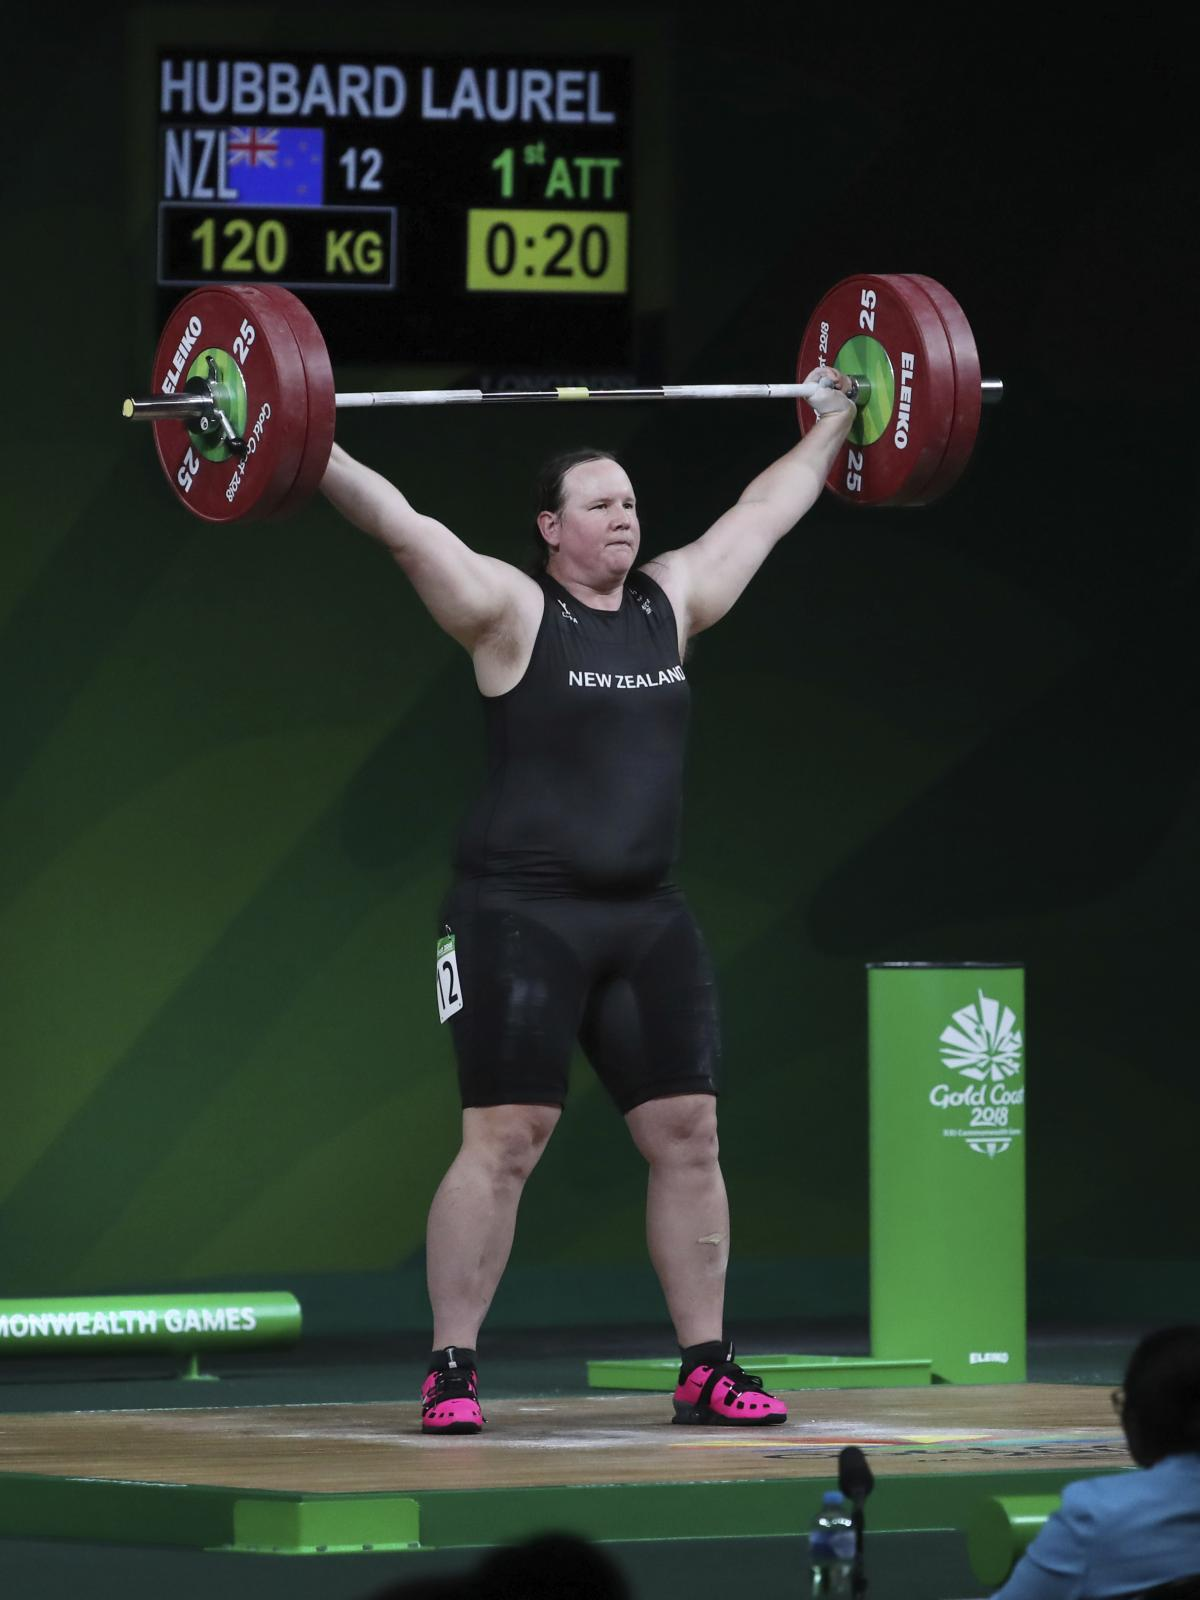 Hubbard competes at the 2018 Commonwealth Games.